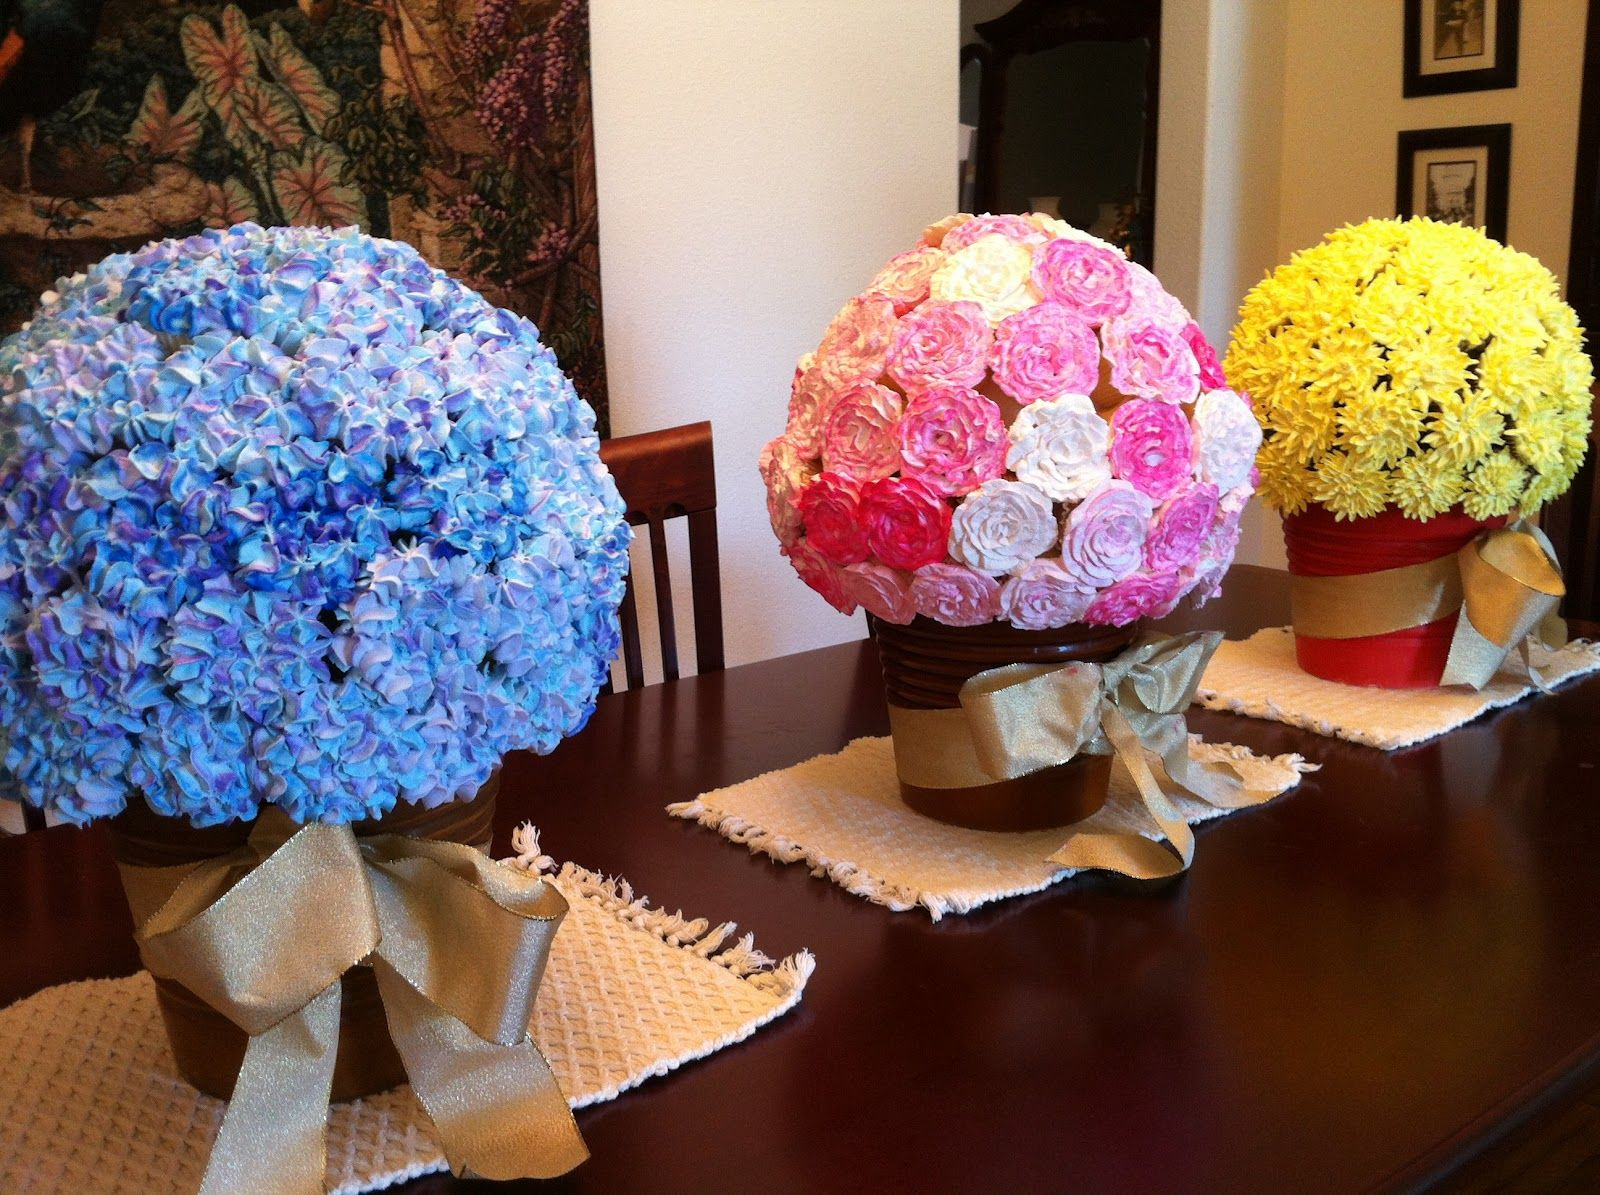 Cake ball flower pot bouquet posted by anh hoang at 208 pm cupcake flower bouquets video tutorial these are real cupcakes covering a foam ball izmirmasajfo